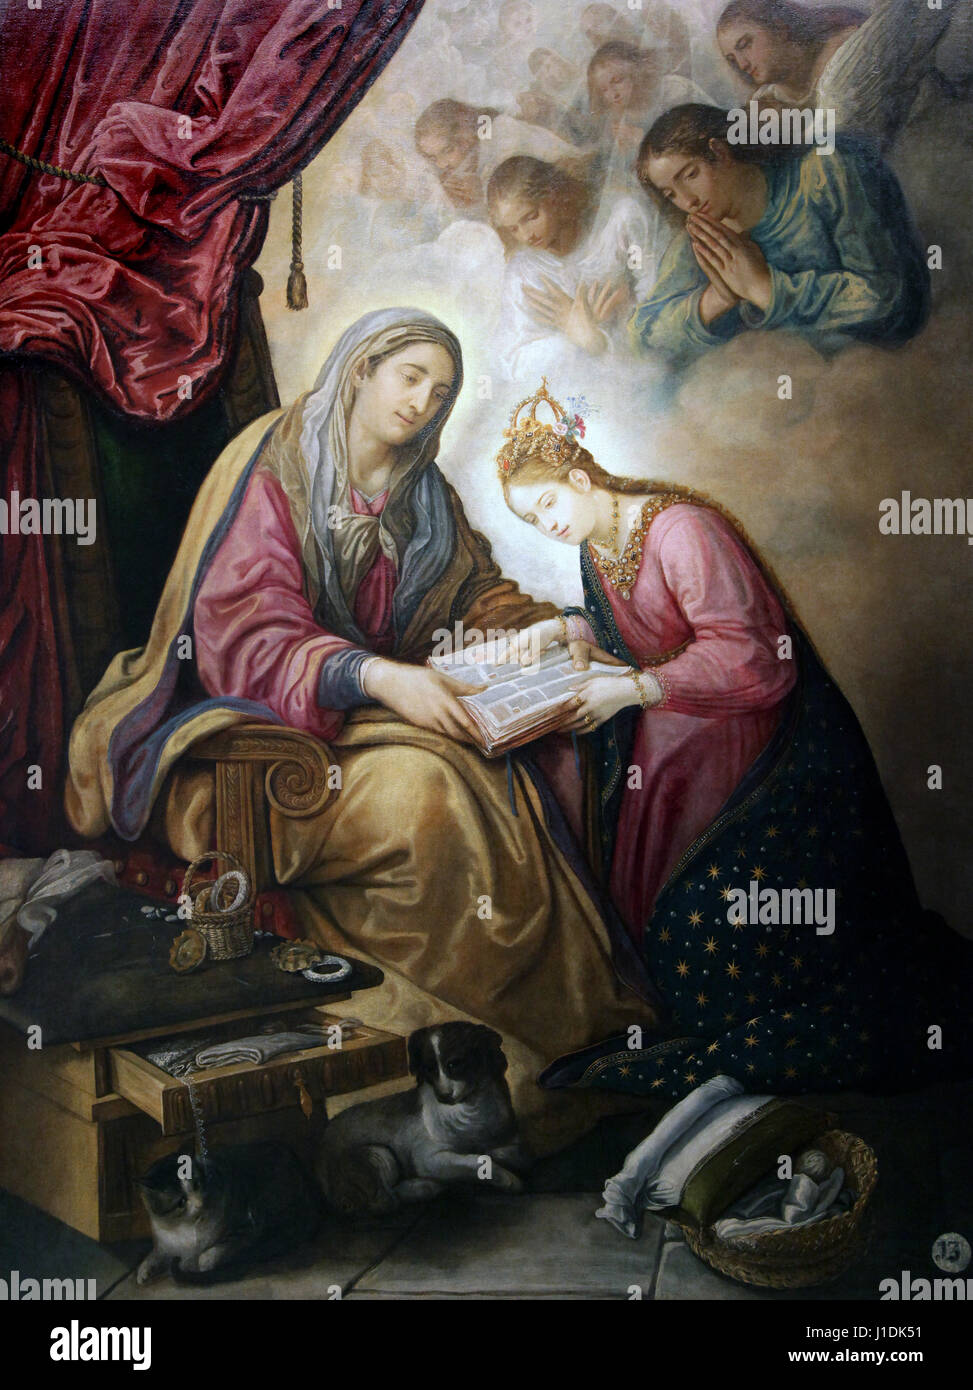 Saint Anne Teaching the Virgin to Read 1610 by Juan de Roelas 1558-1631 Santa Ana ensenando a leer a la Virgen Sevilla - Stock Image